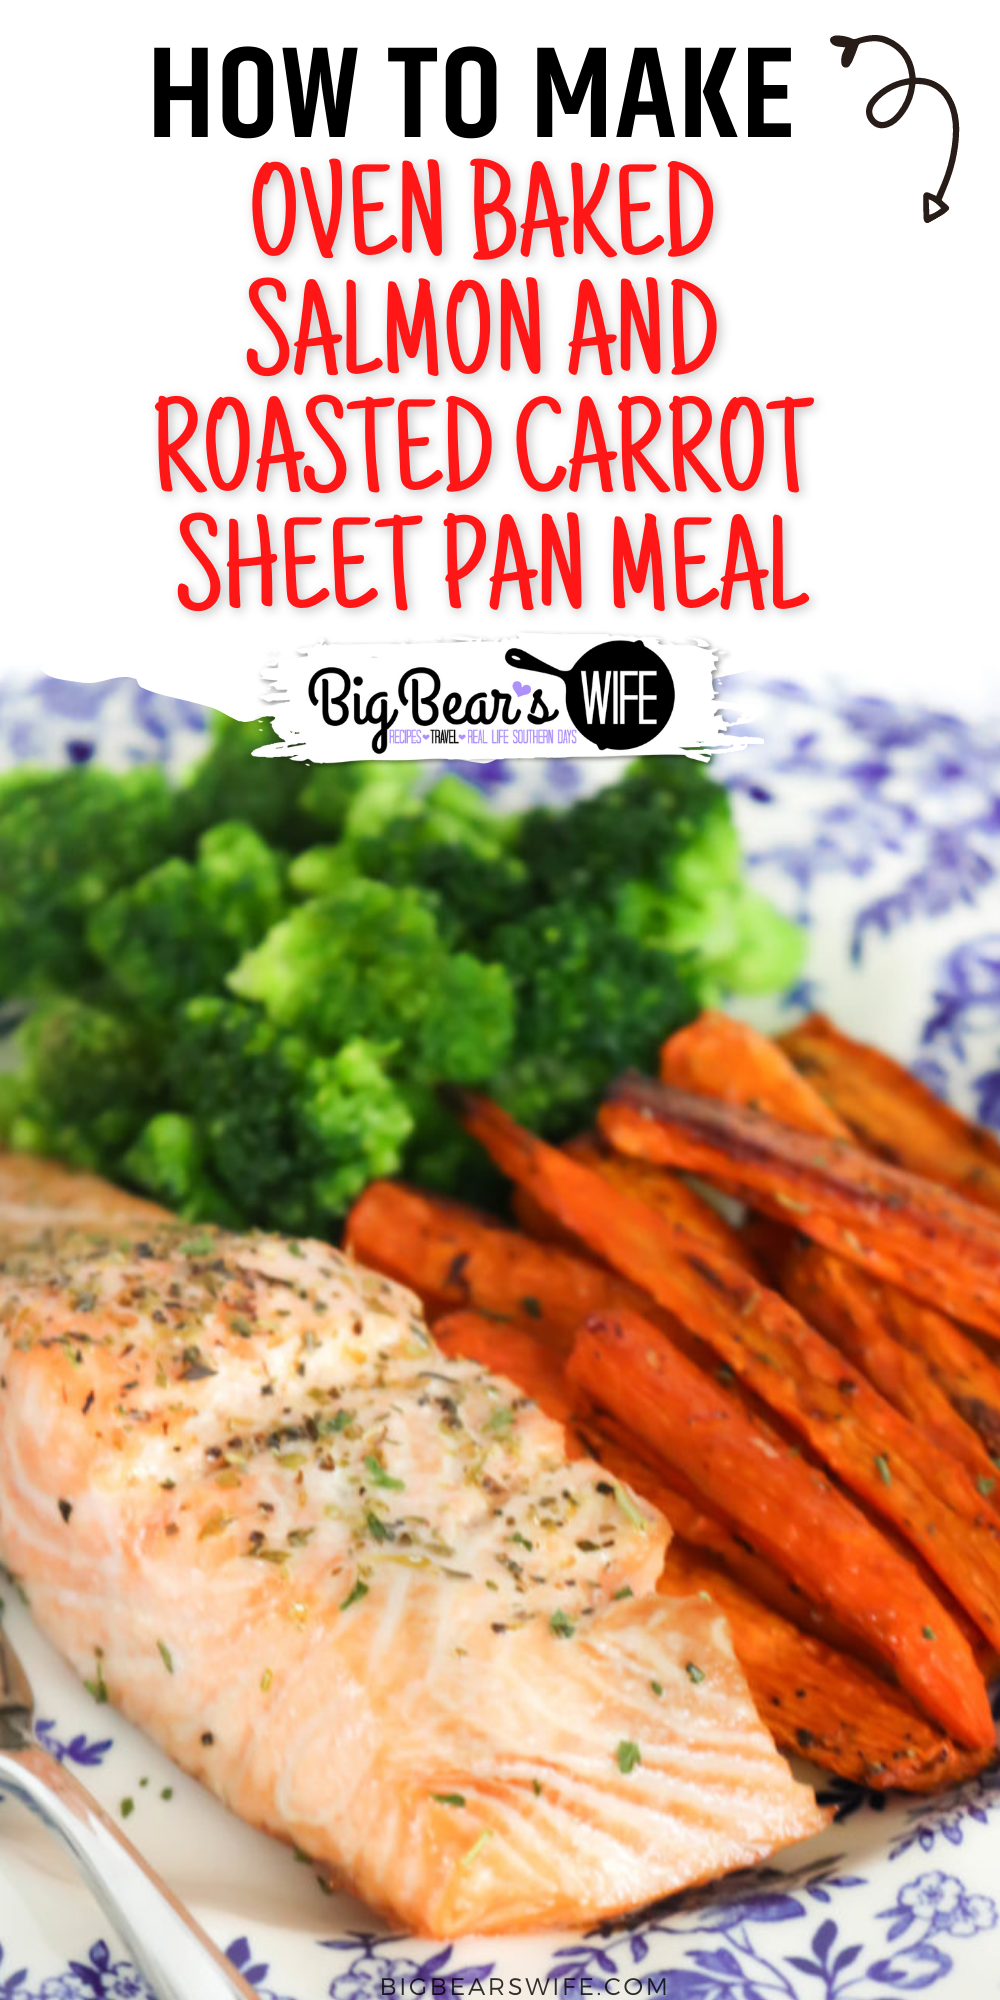 Oven Baked Salmon and Roasted Carrot Sheet Pan Meal - Oven Baked Salmon may be one the easiest meals to make during the week plus the main dish and side dish cooks together!. This recipe is great for a weeknight dinner and it is perfect for meal prepping on Sundays!  via @bigbearswife